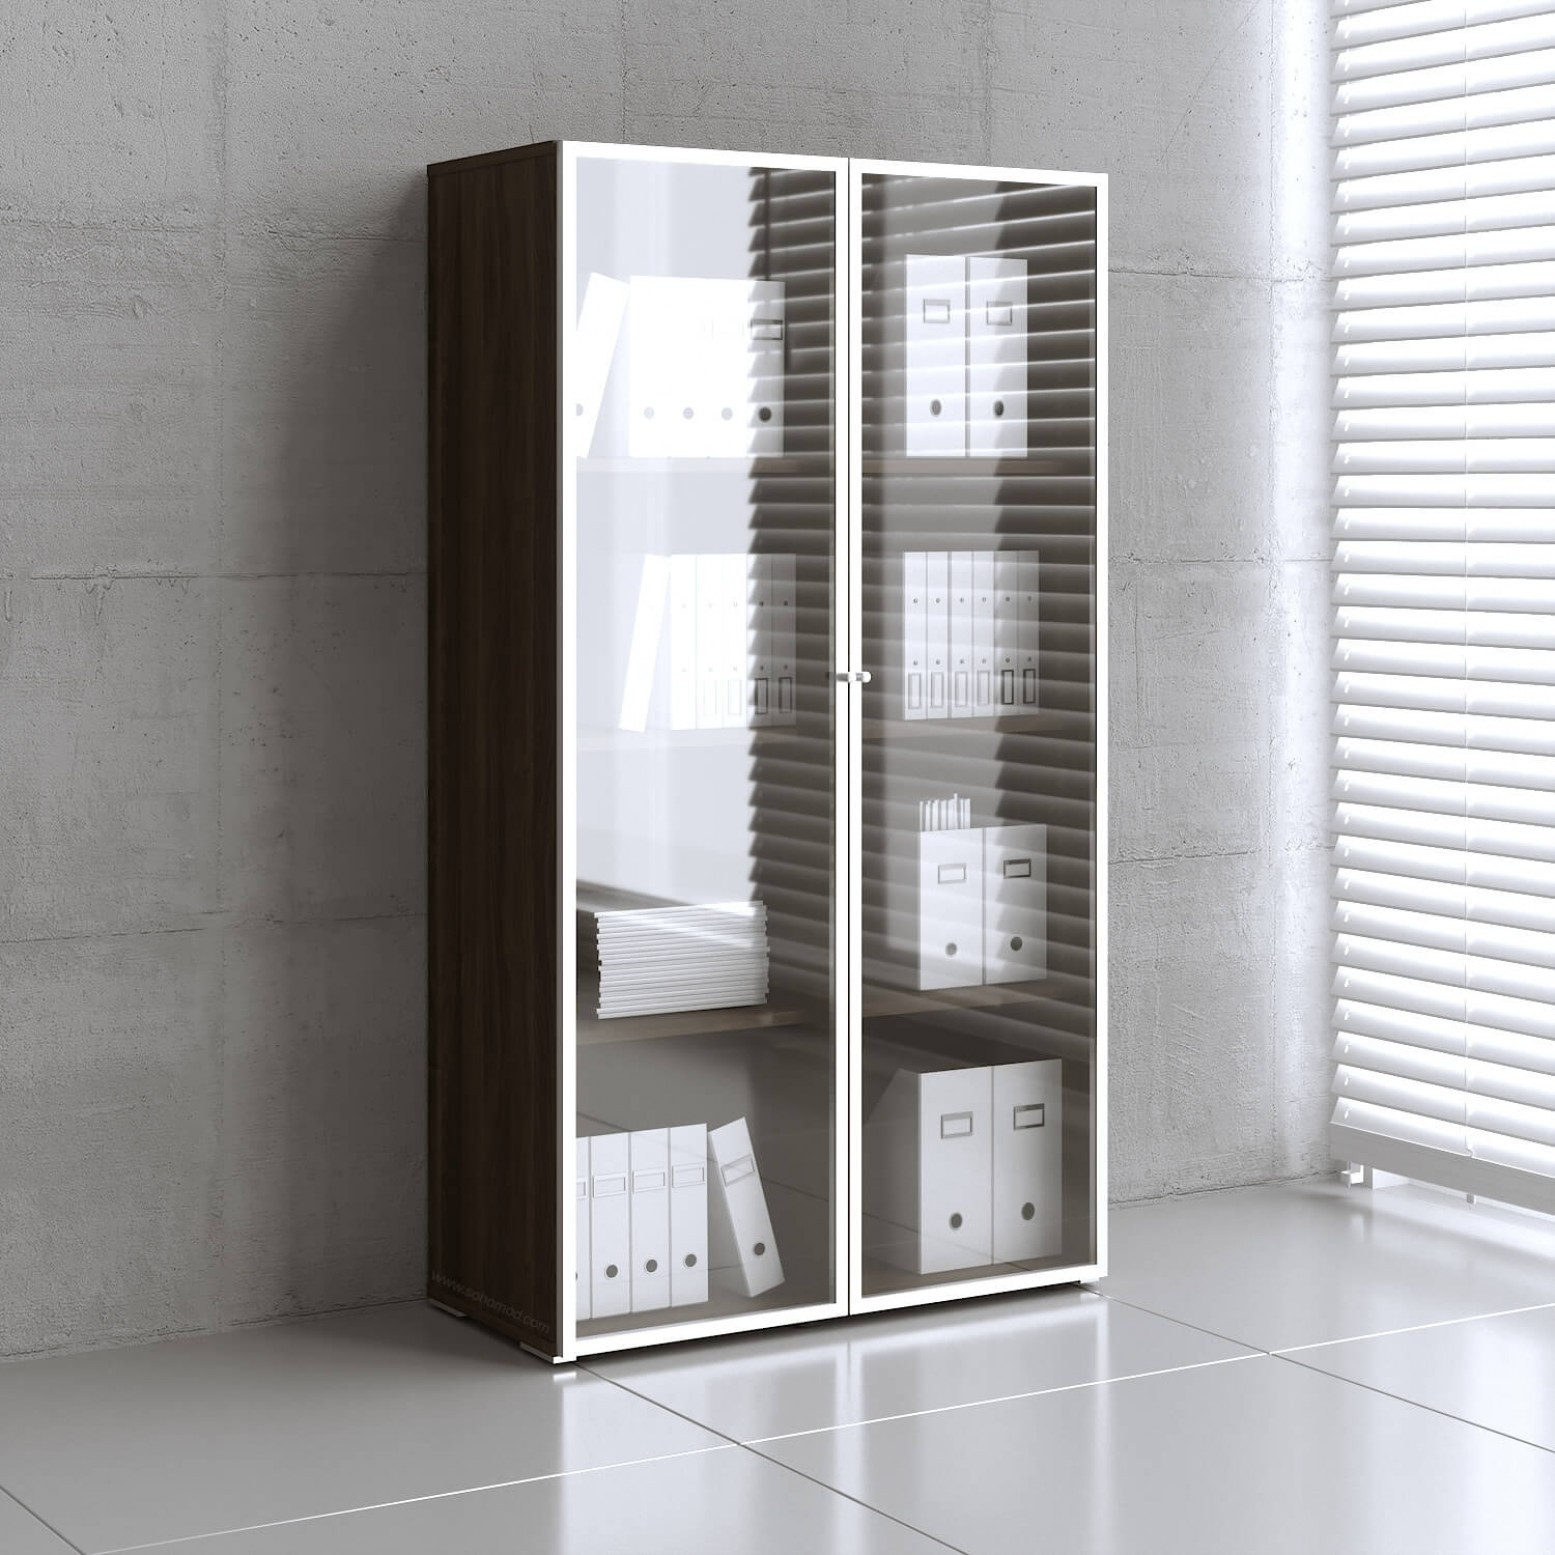 Mito Tall Storage Cabinet W 2 Doors By Mdd Office Furniture Sohomod Com